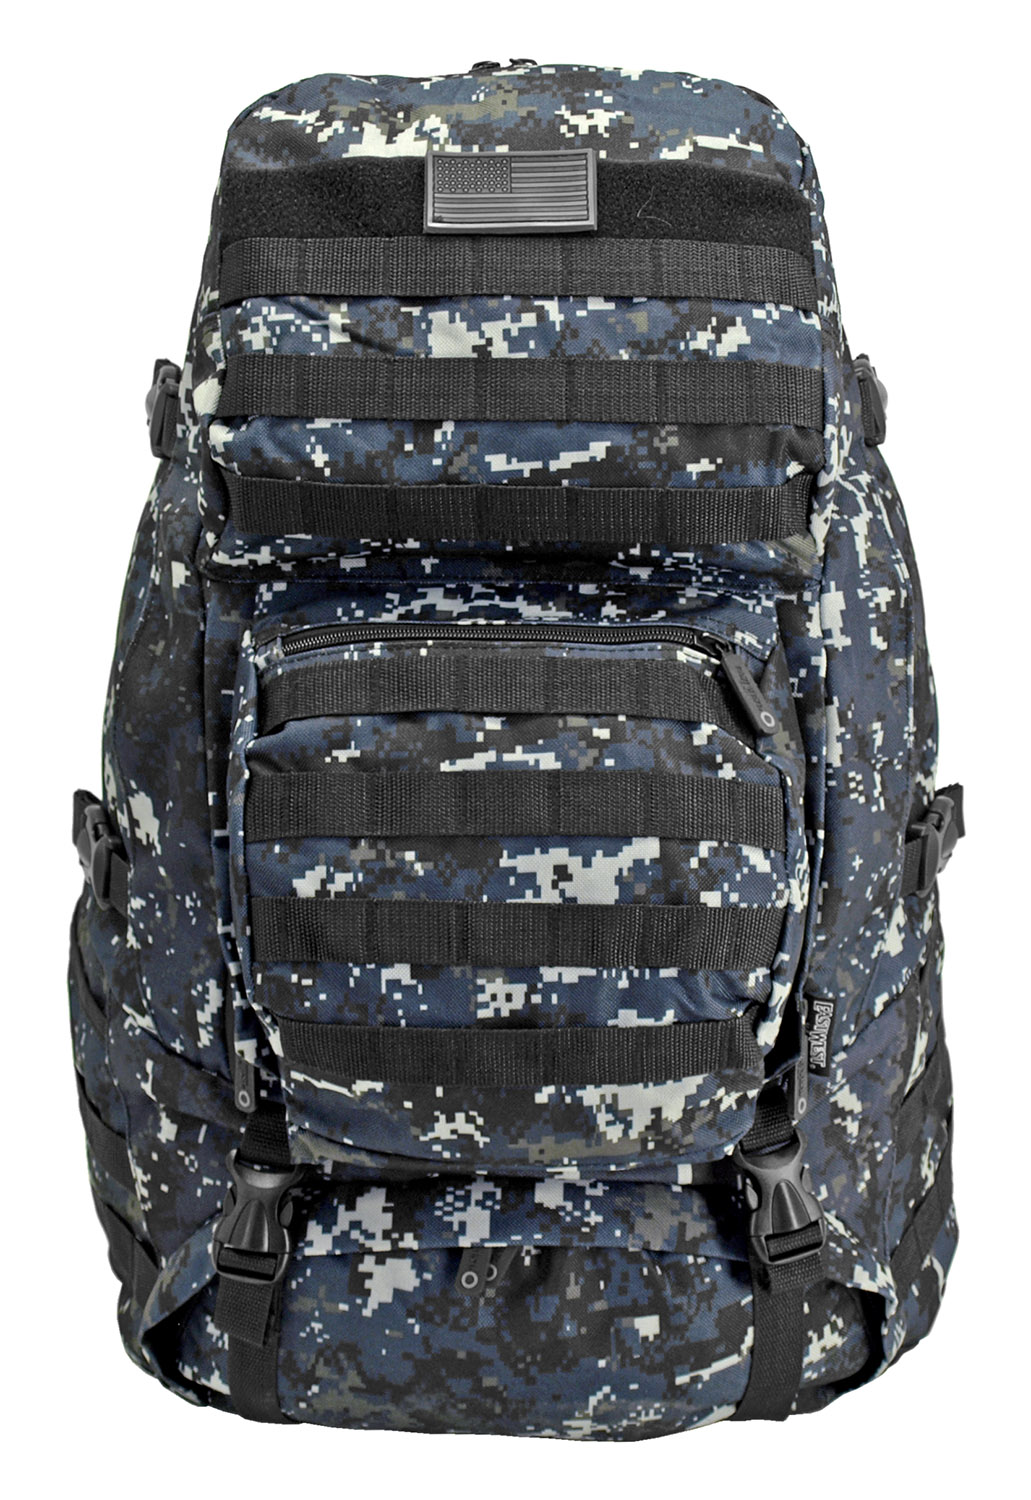 Large Tactical Readiness Pack - Blue Digital Camo